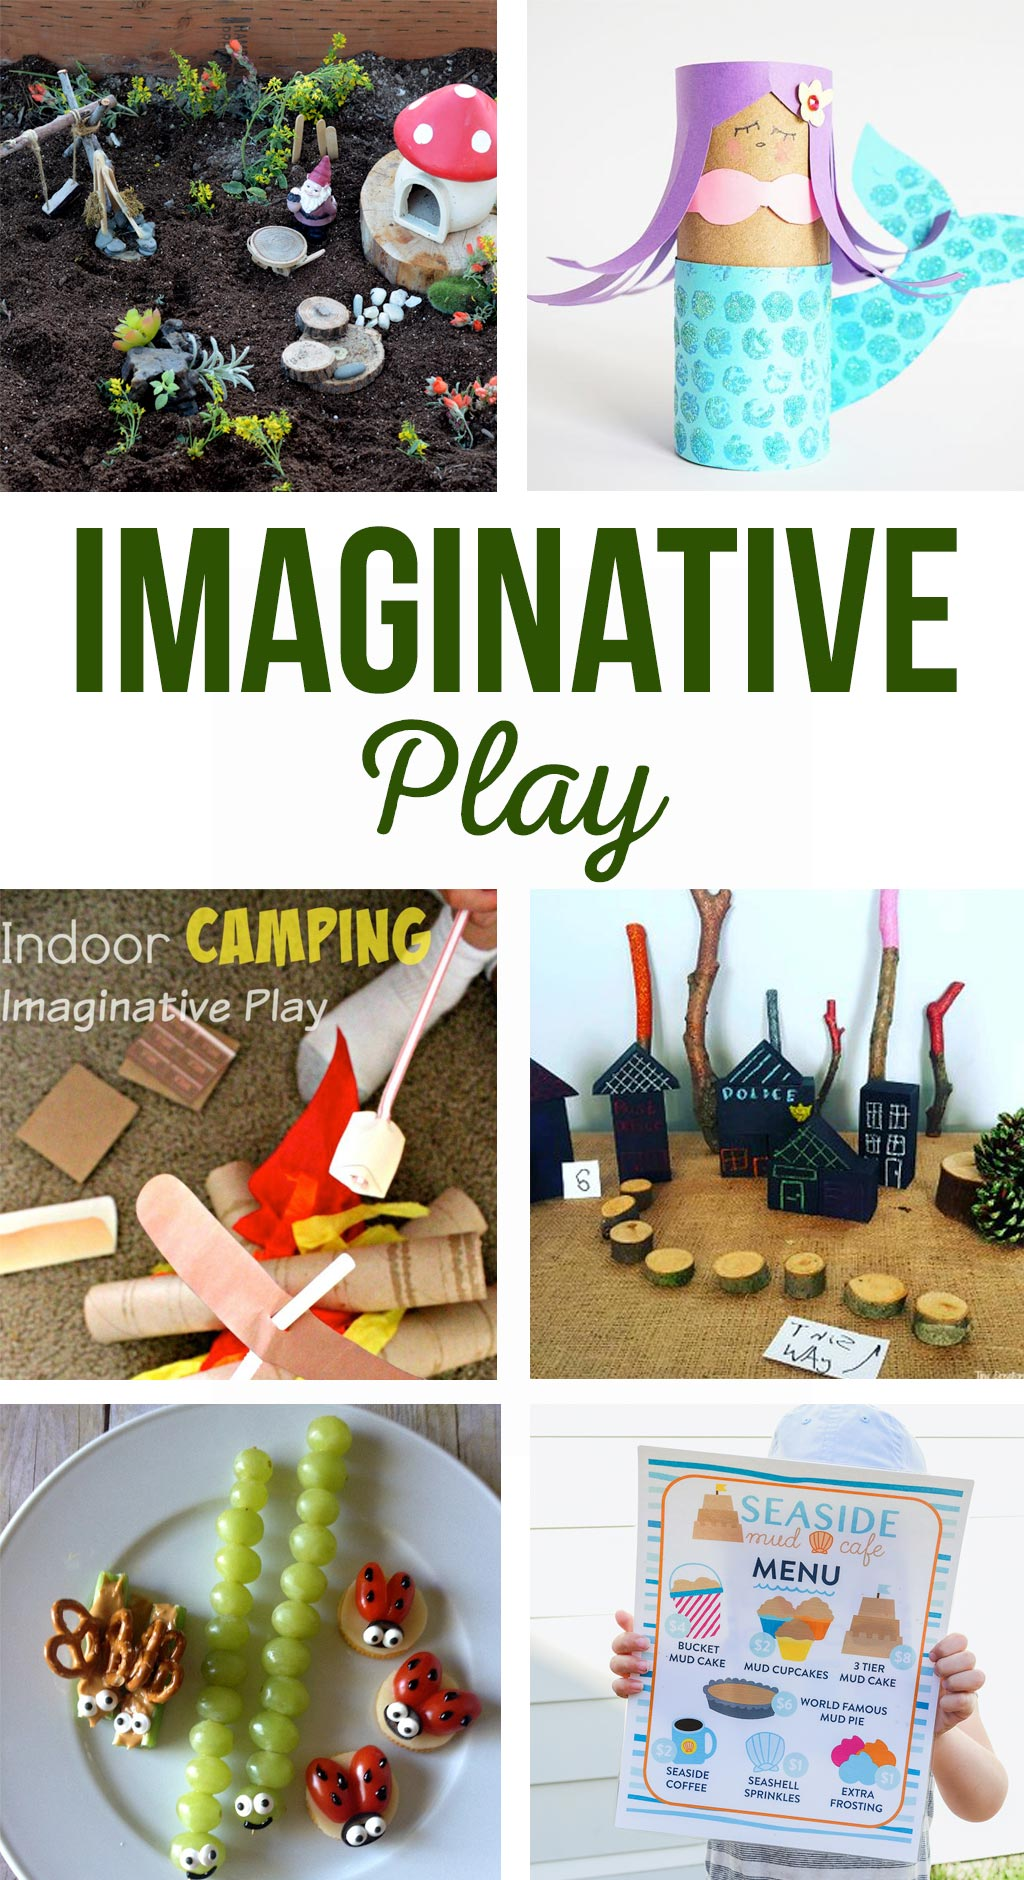 Imaginative Play | Activities and free printables to get your kids using their imaginations!  Free printables, games and so much more!  #kids #activities #imagination #play